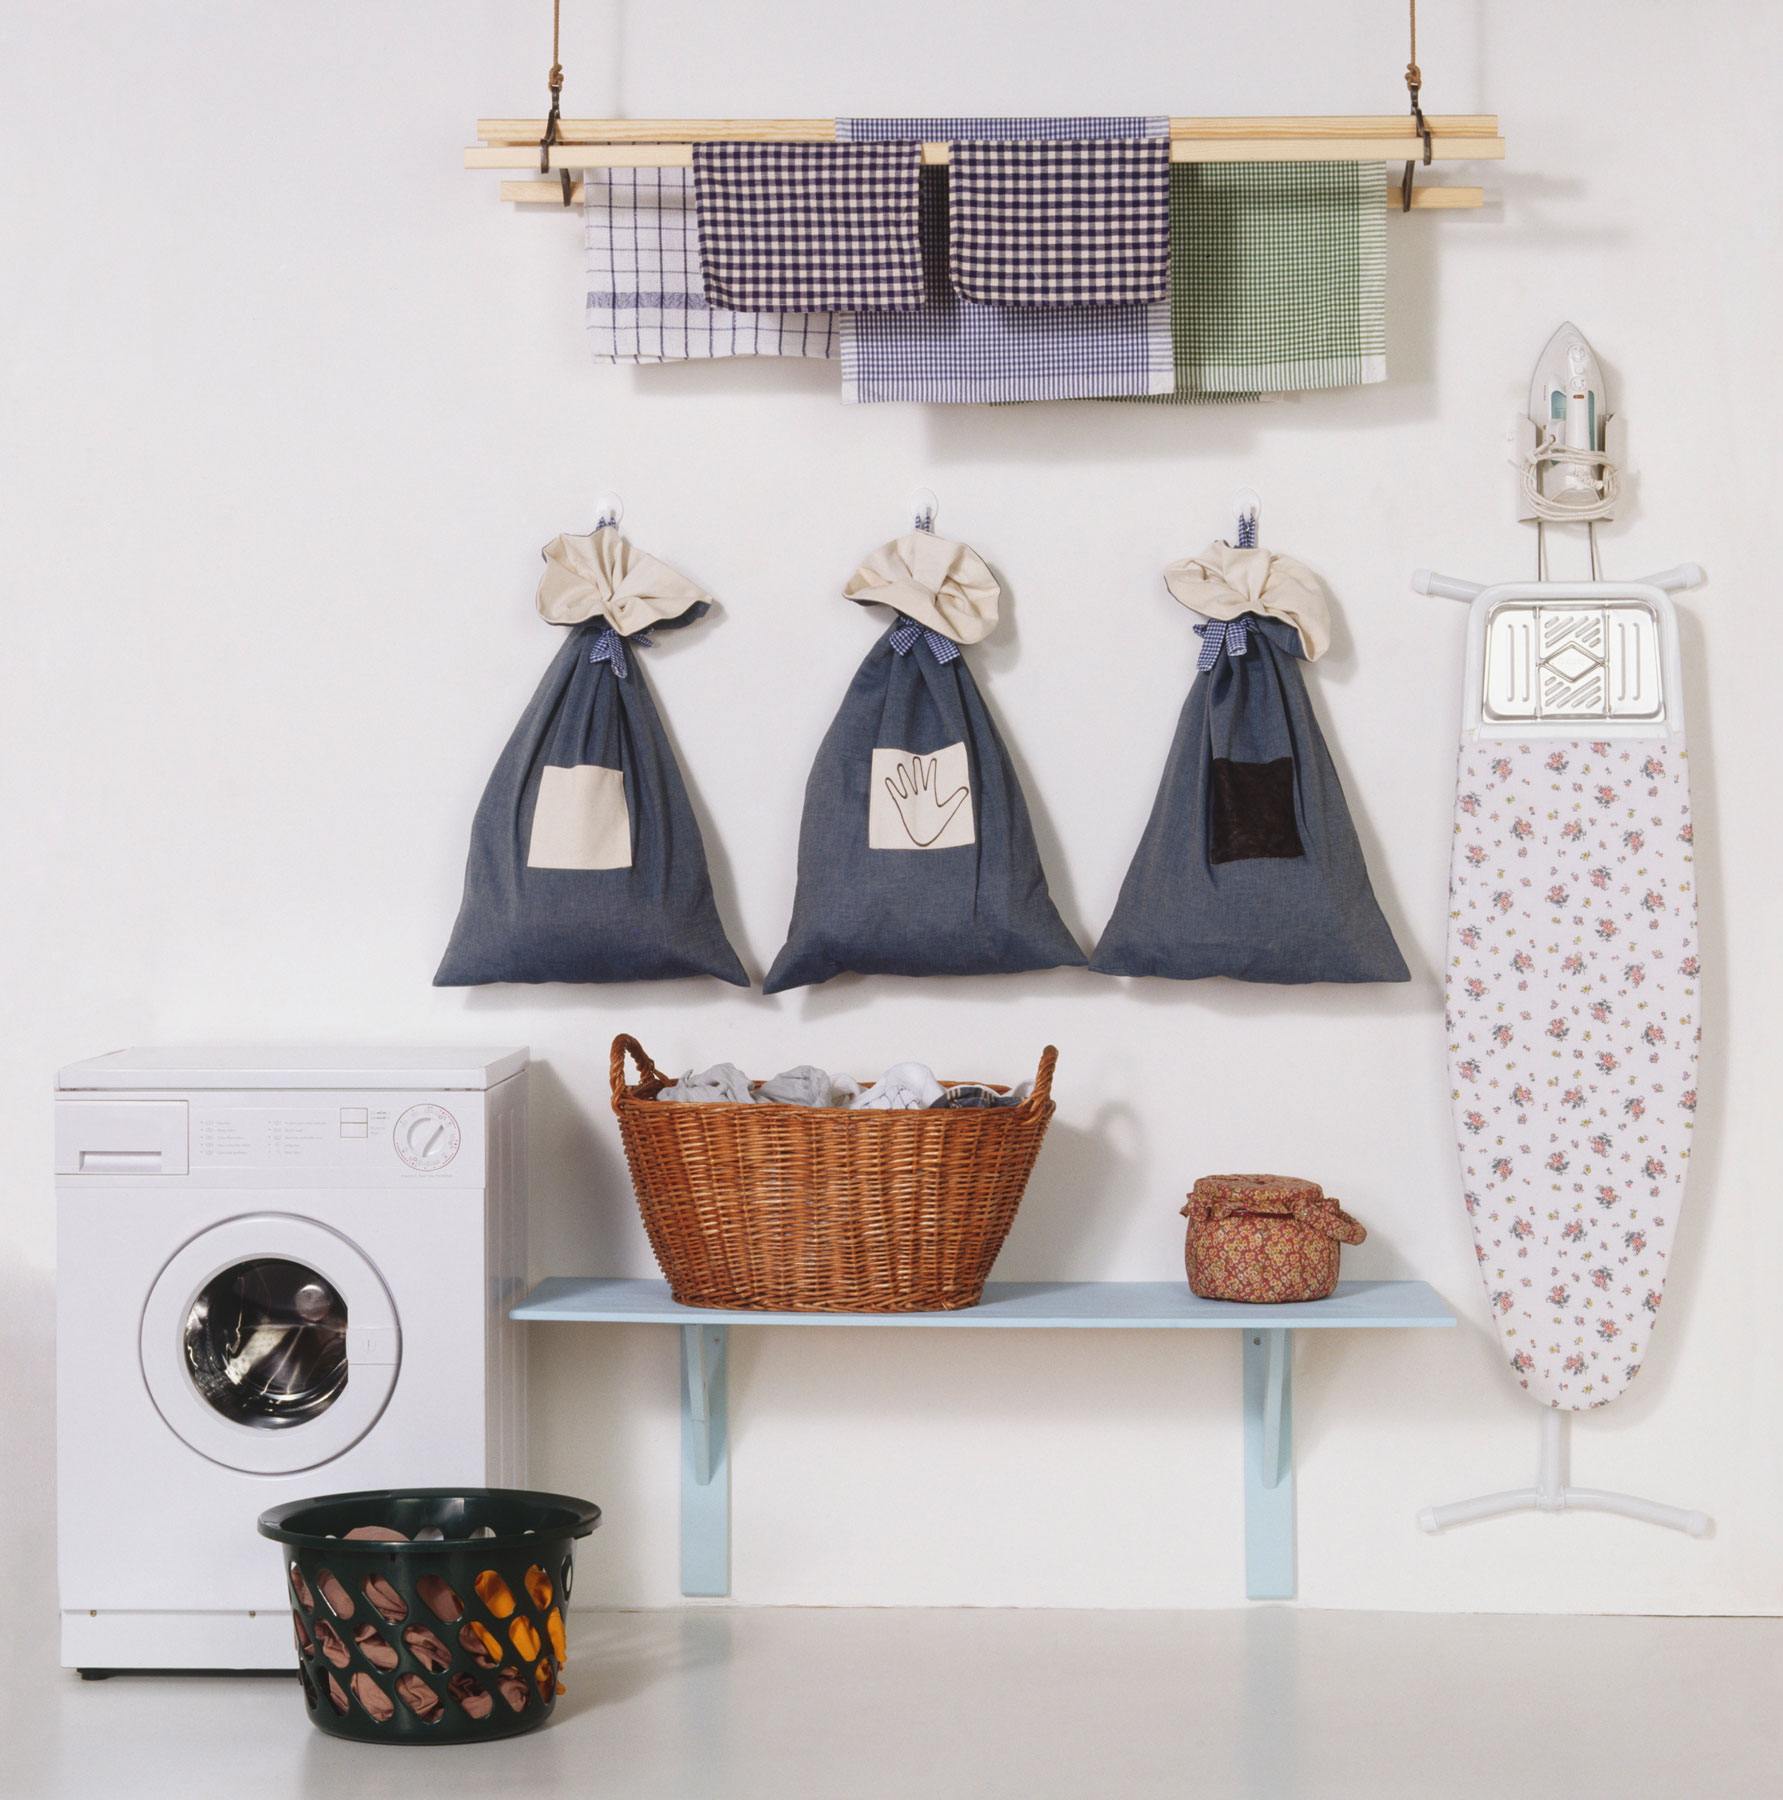 No-paint room upgrades - The Laundry Room